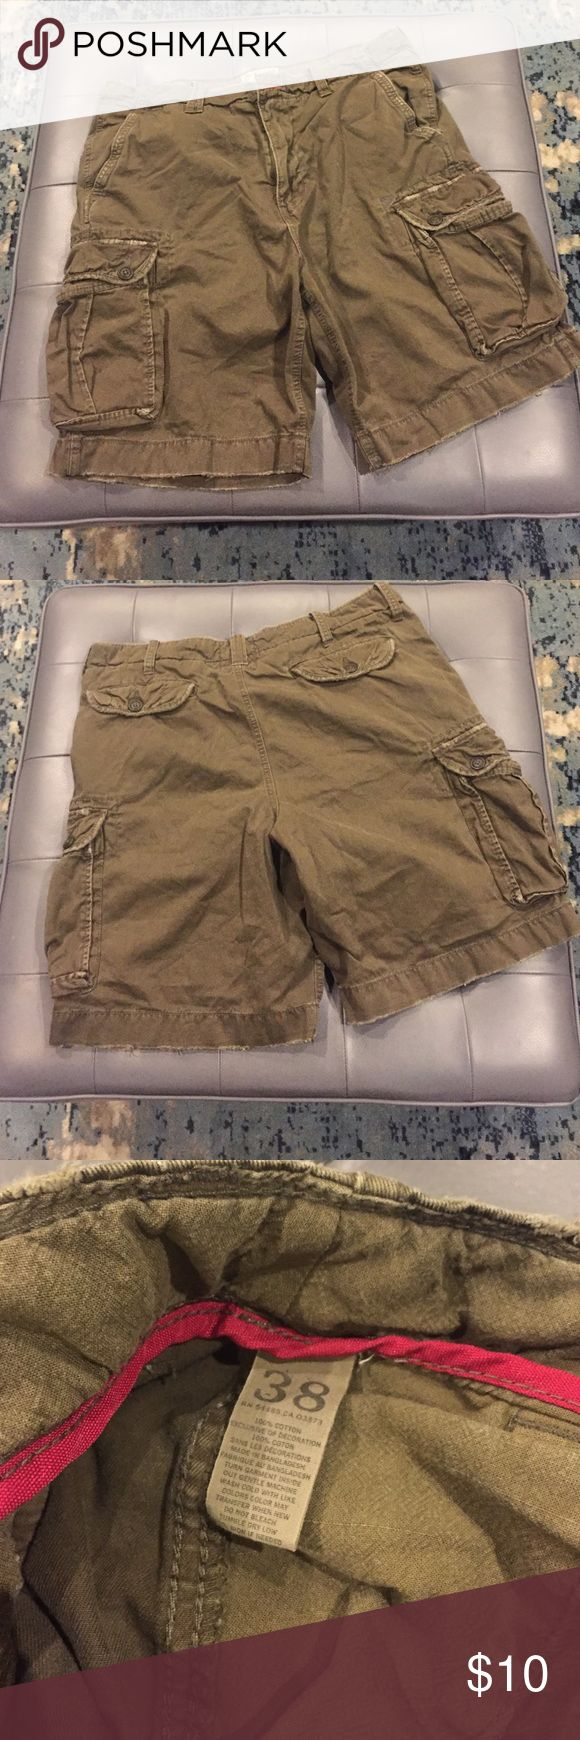 American Eagle cargo shorts green American Eagle cargo shorts in a utility green, perfect condition! American Eagle Outfitters Shorts Cargo